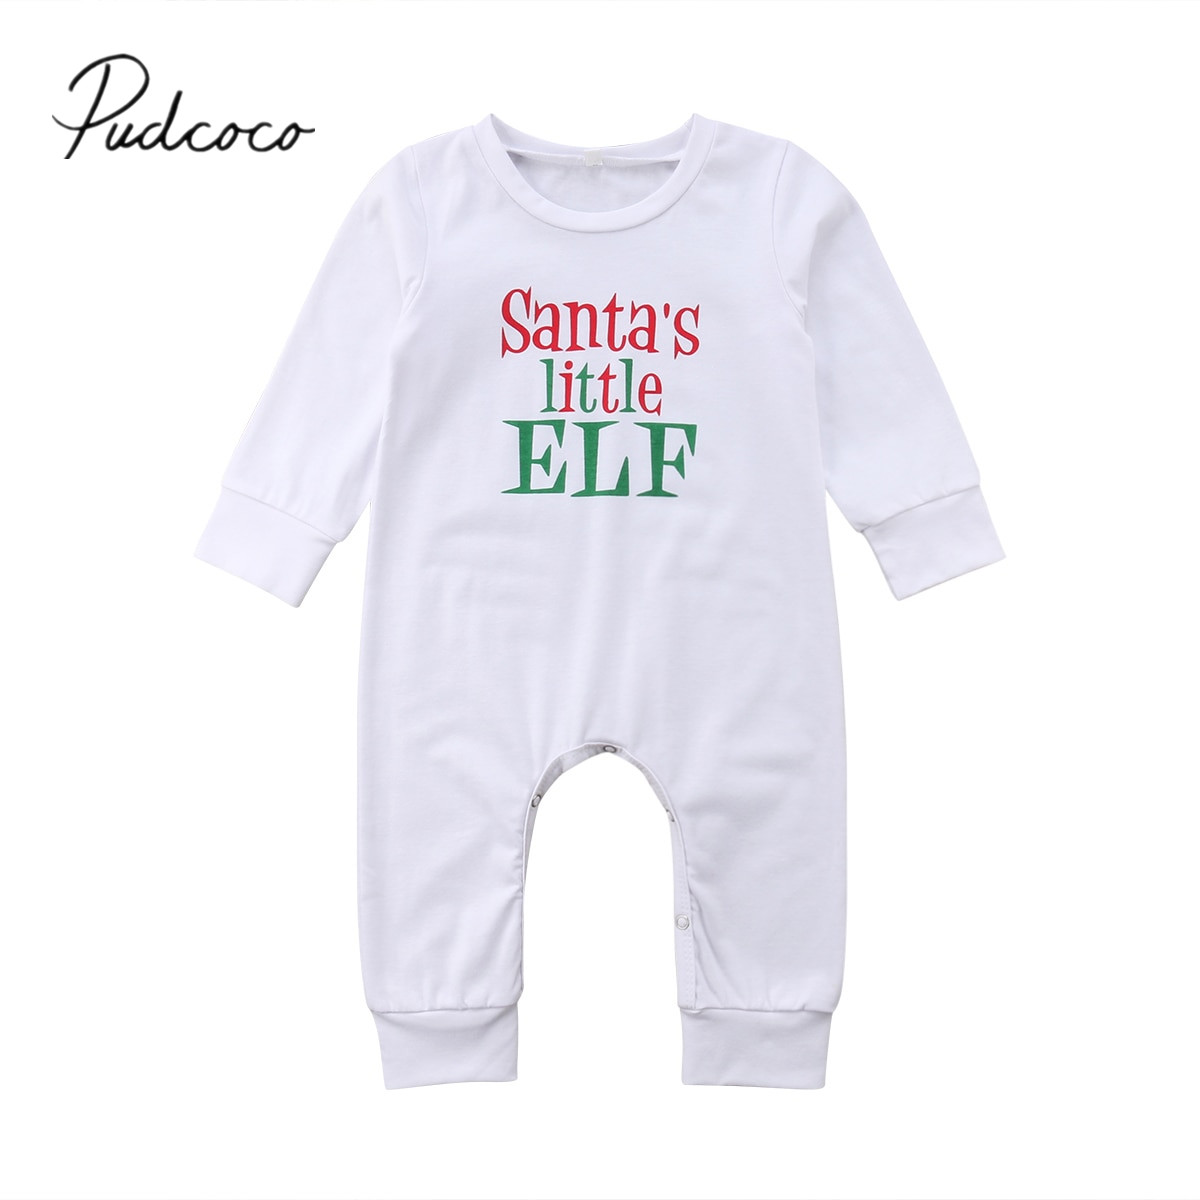 Toddler Baby Girl Boys Long Sleeve Letter Print Christmas Jumpsuit Romper Outfit